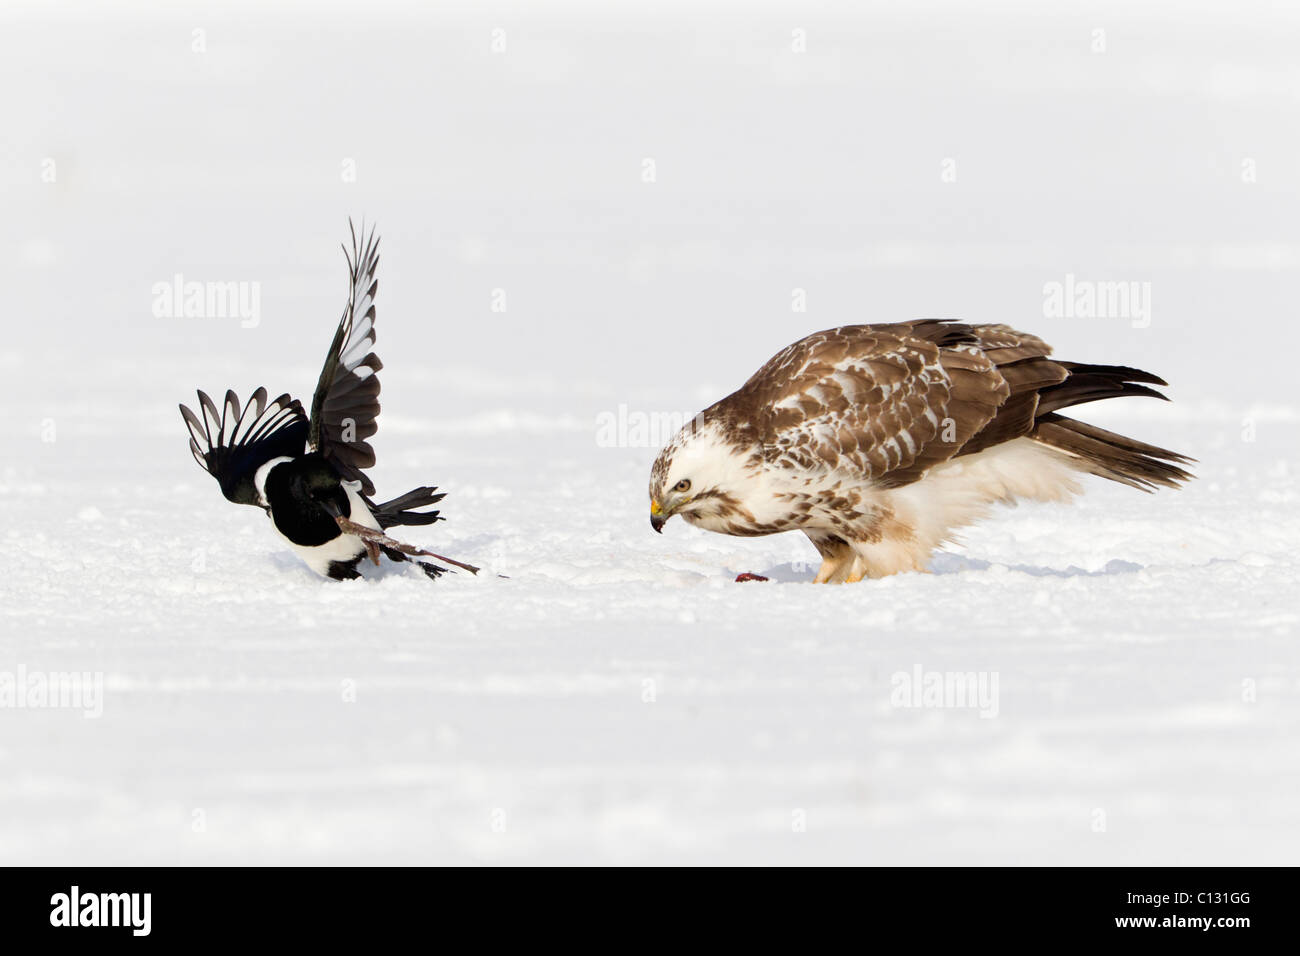 Common Buzzard (Buteo buteo), feeding on carrion, being harassed by Common Magpie (Pica pica) - Stock Image